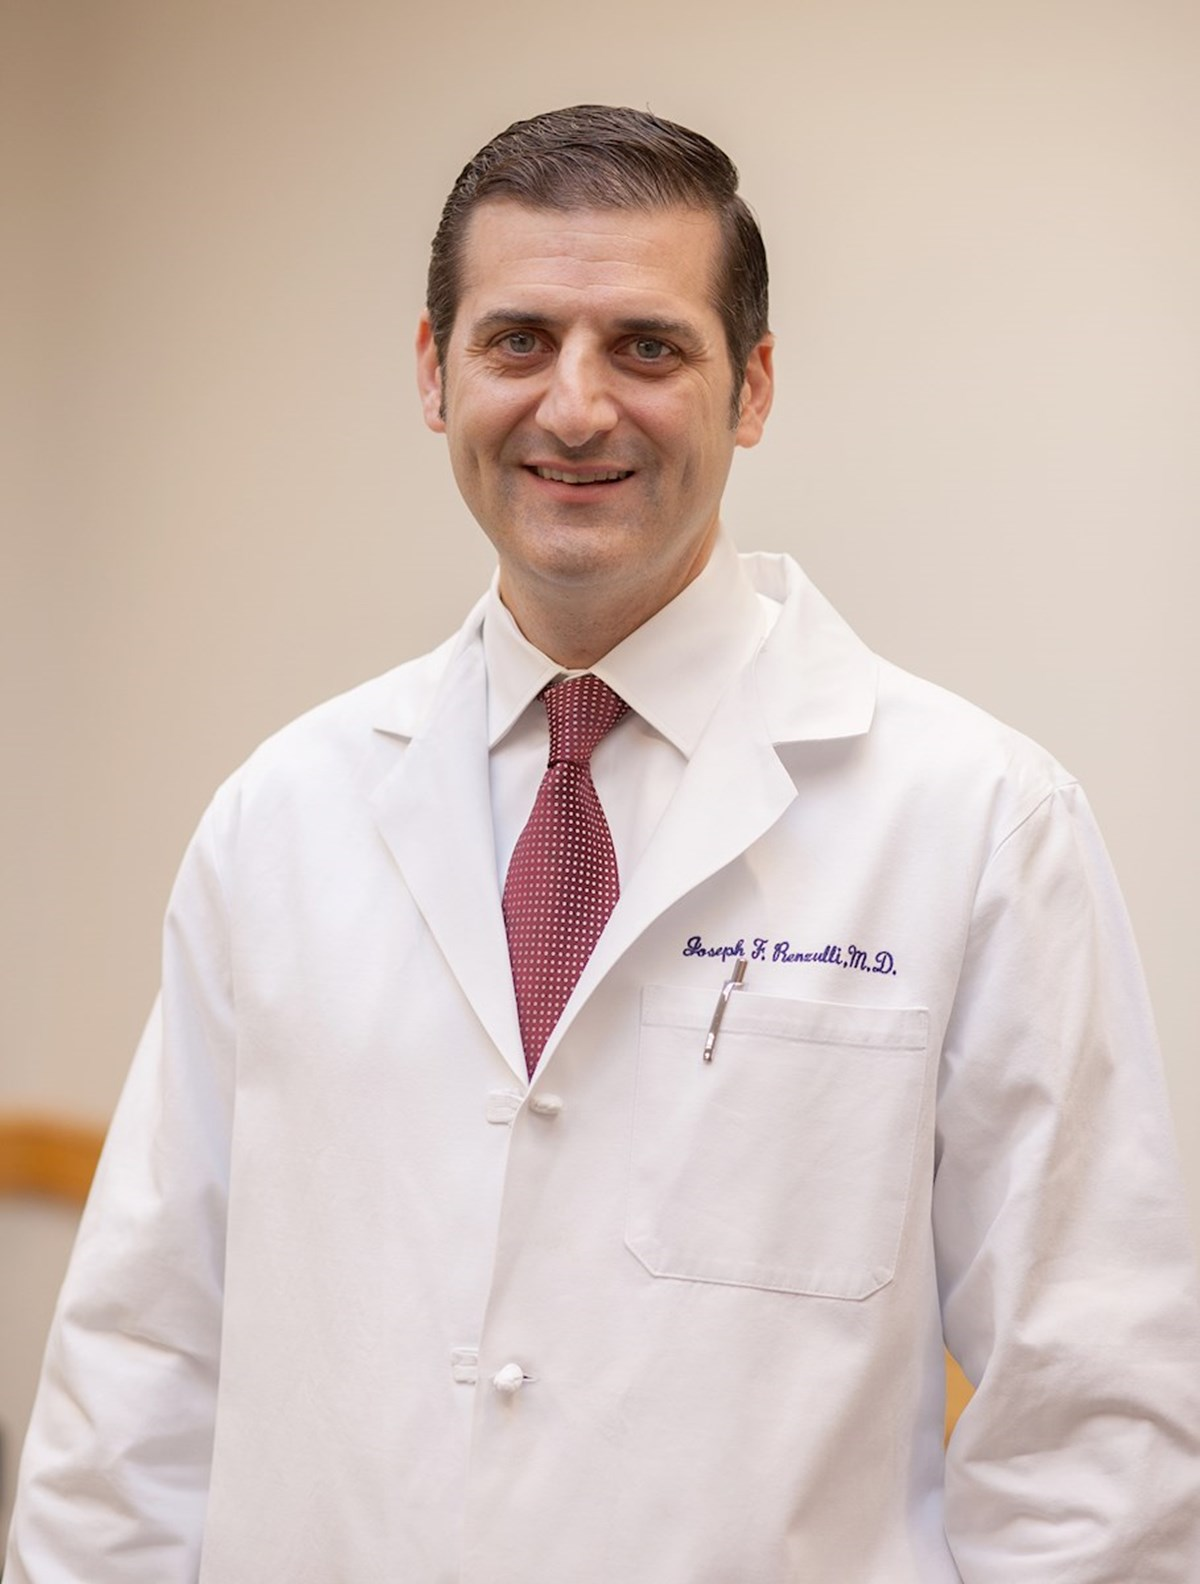 SCH welcomes Dr. Joseph Renzulli to medical staff